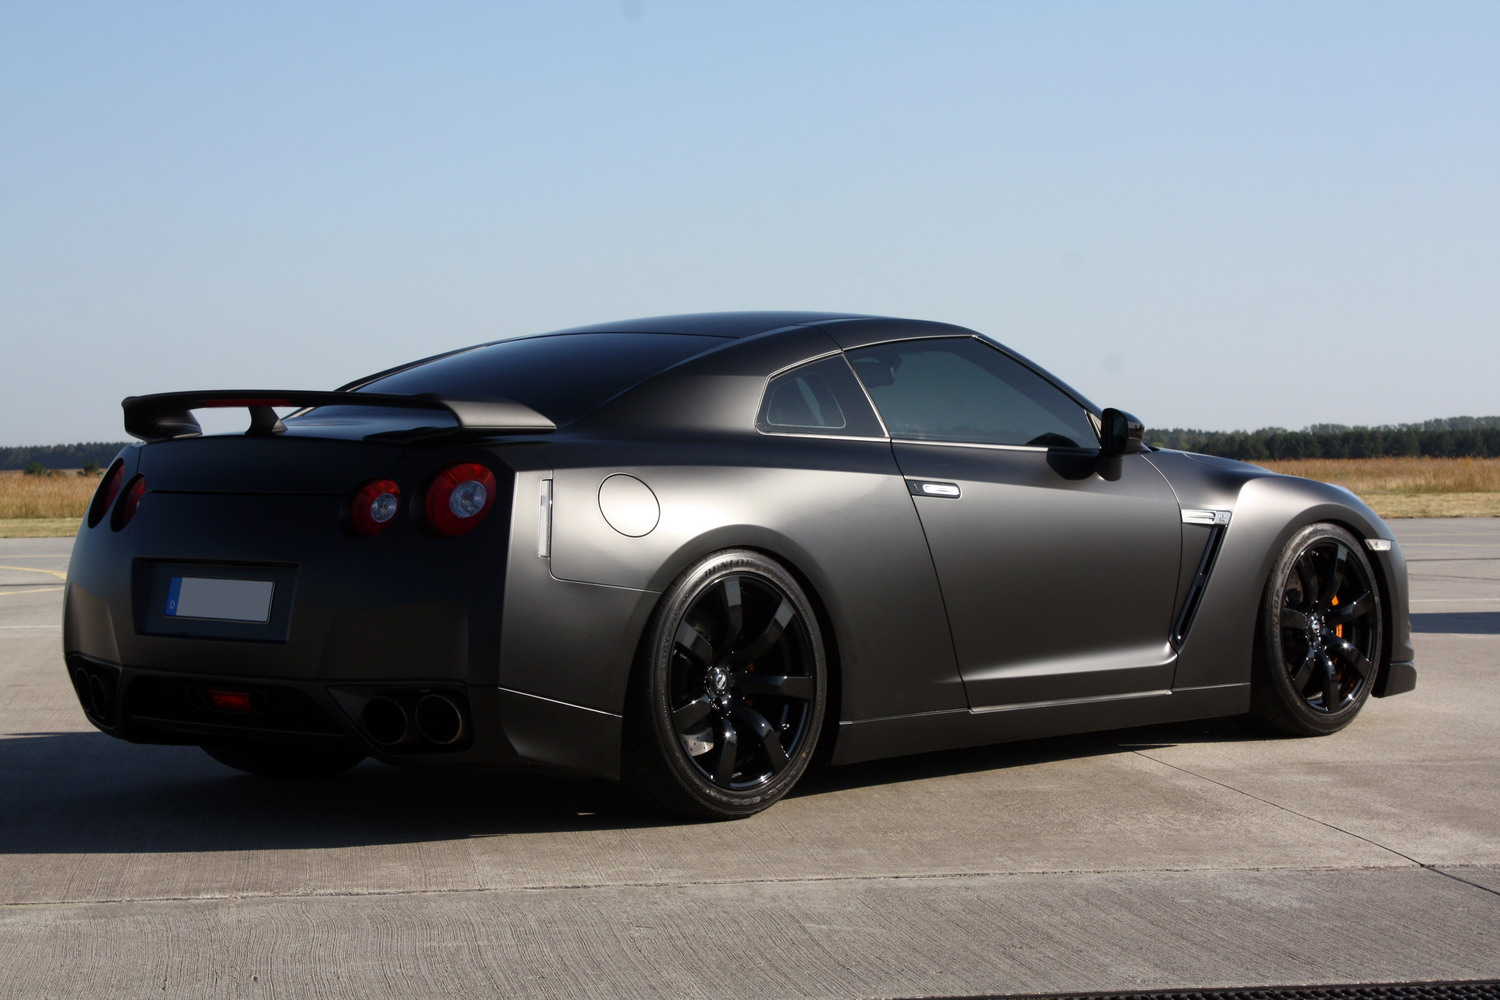 Nissan Gt R Specifications Pictures Information And Specs Pics 3